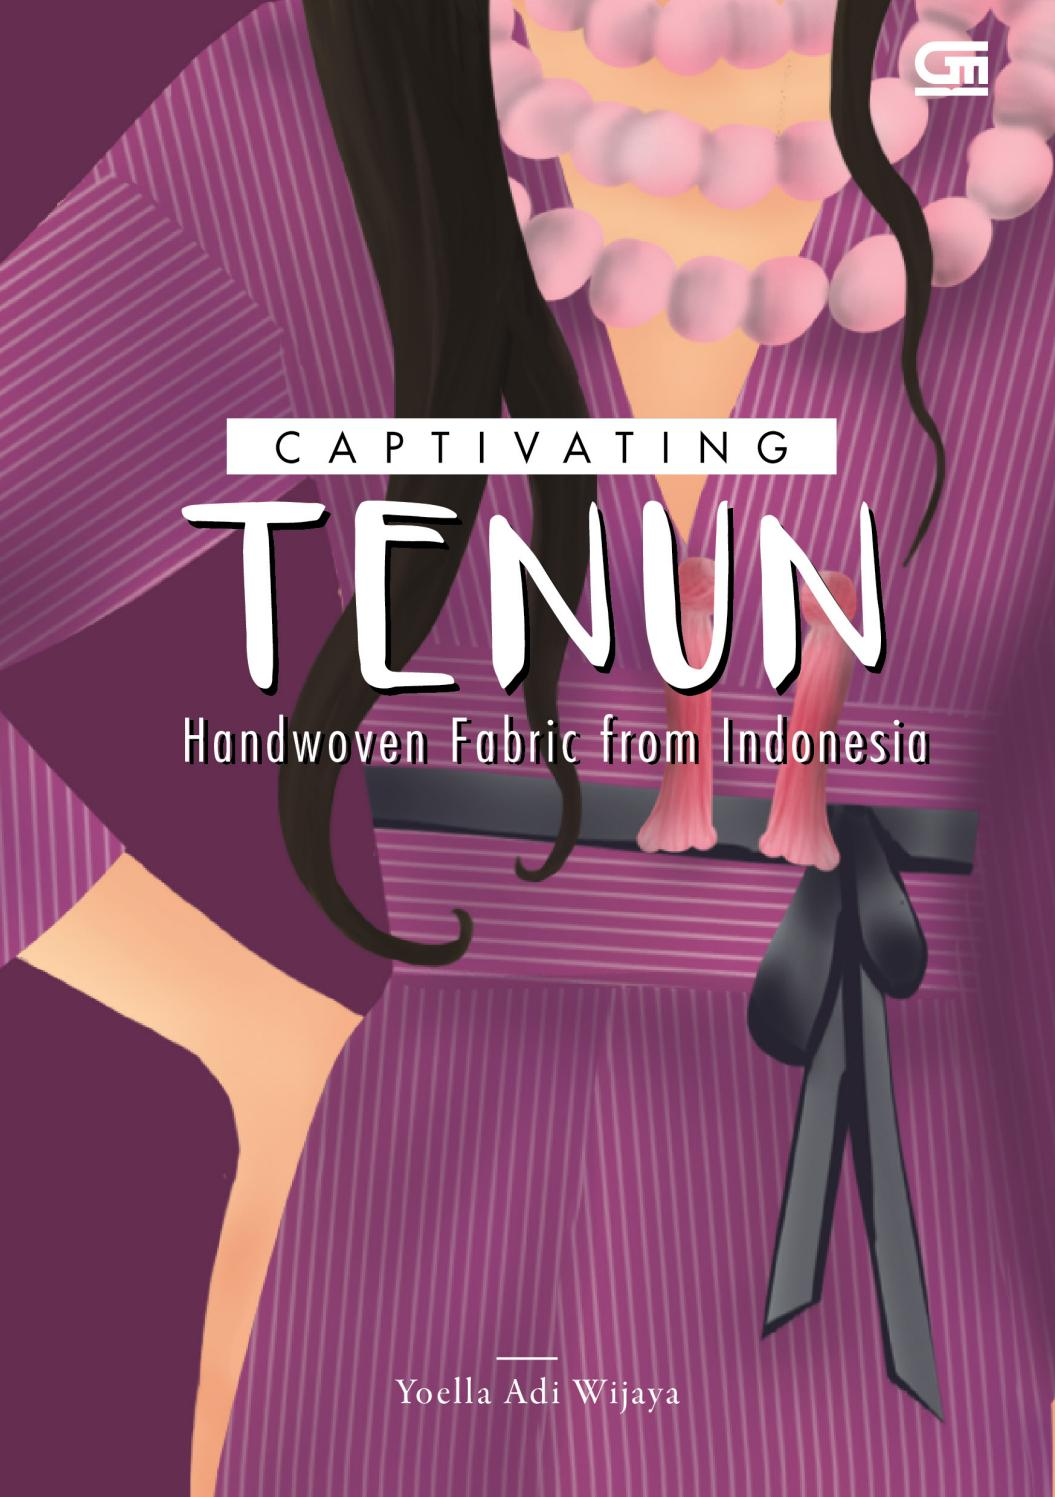 Captivating Tenun Handwoven Fabric From Indonesia By